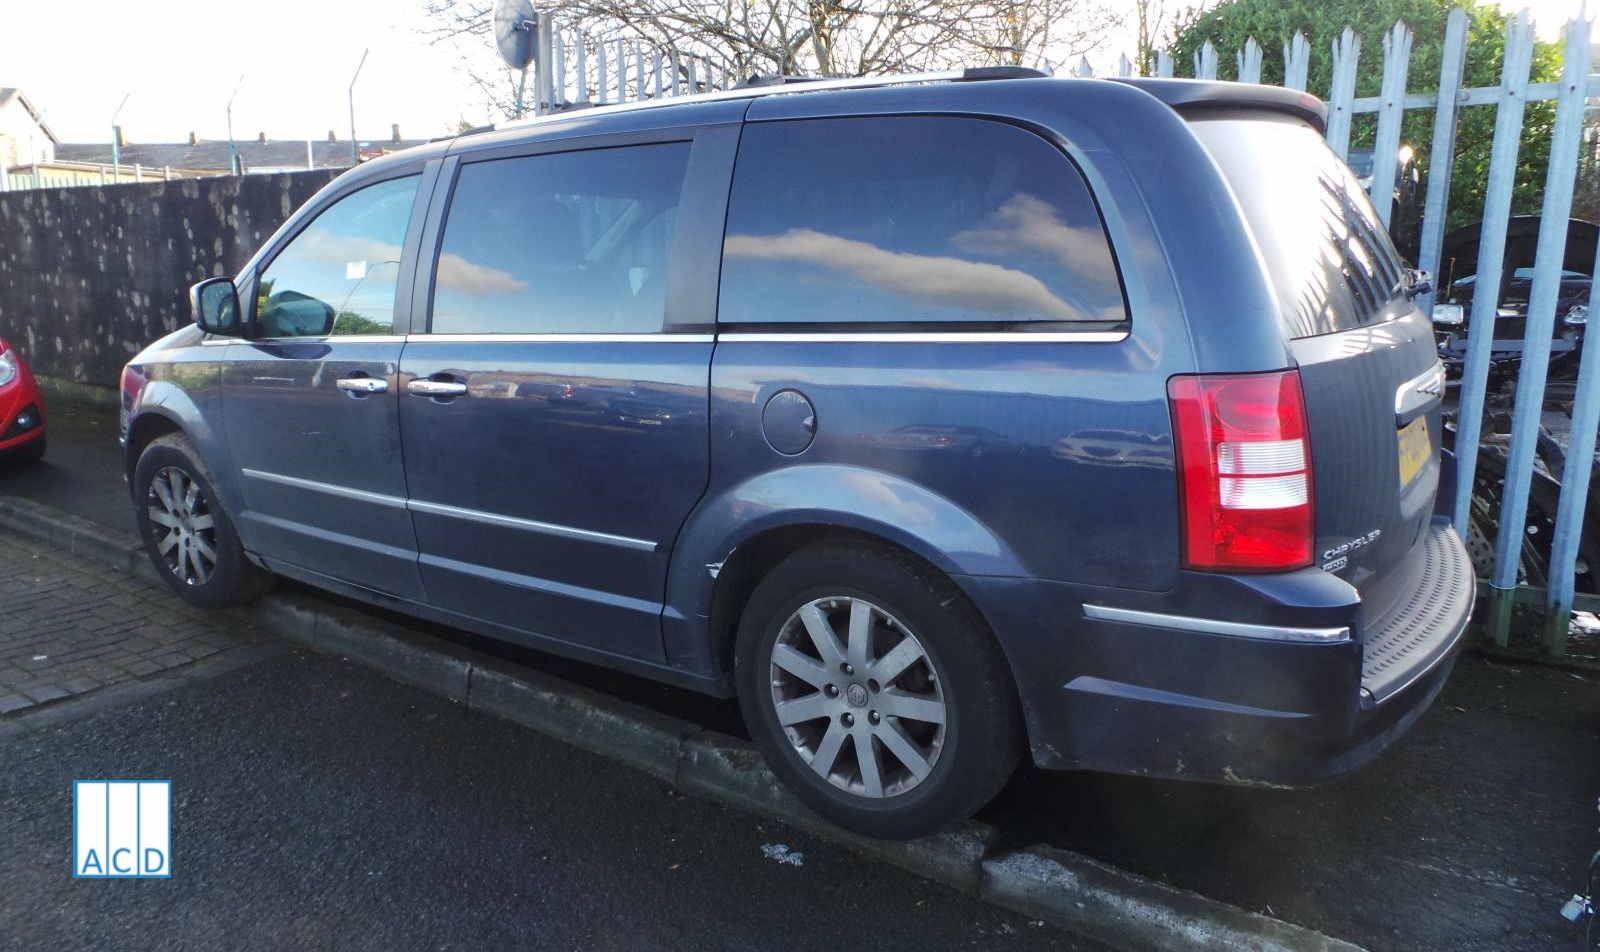 Chrysler Grand Voyager 2.8L Diesel 6 - Speed Automatic 2008 #3266 01